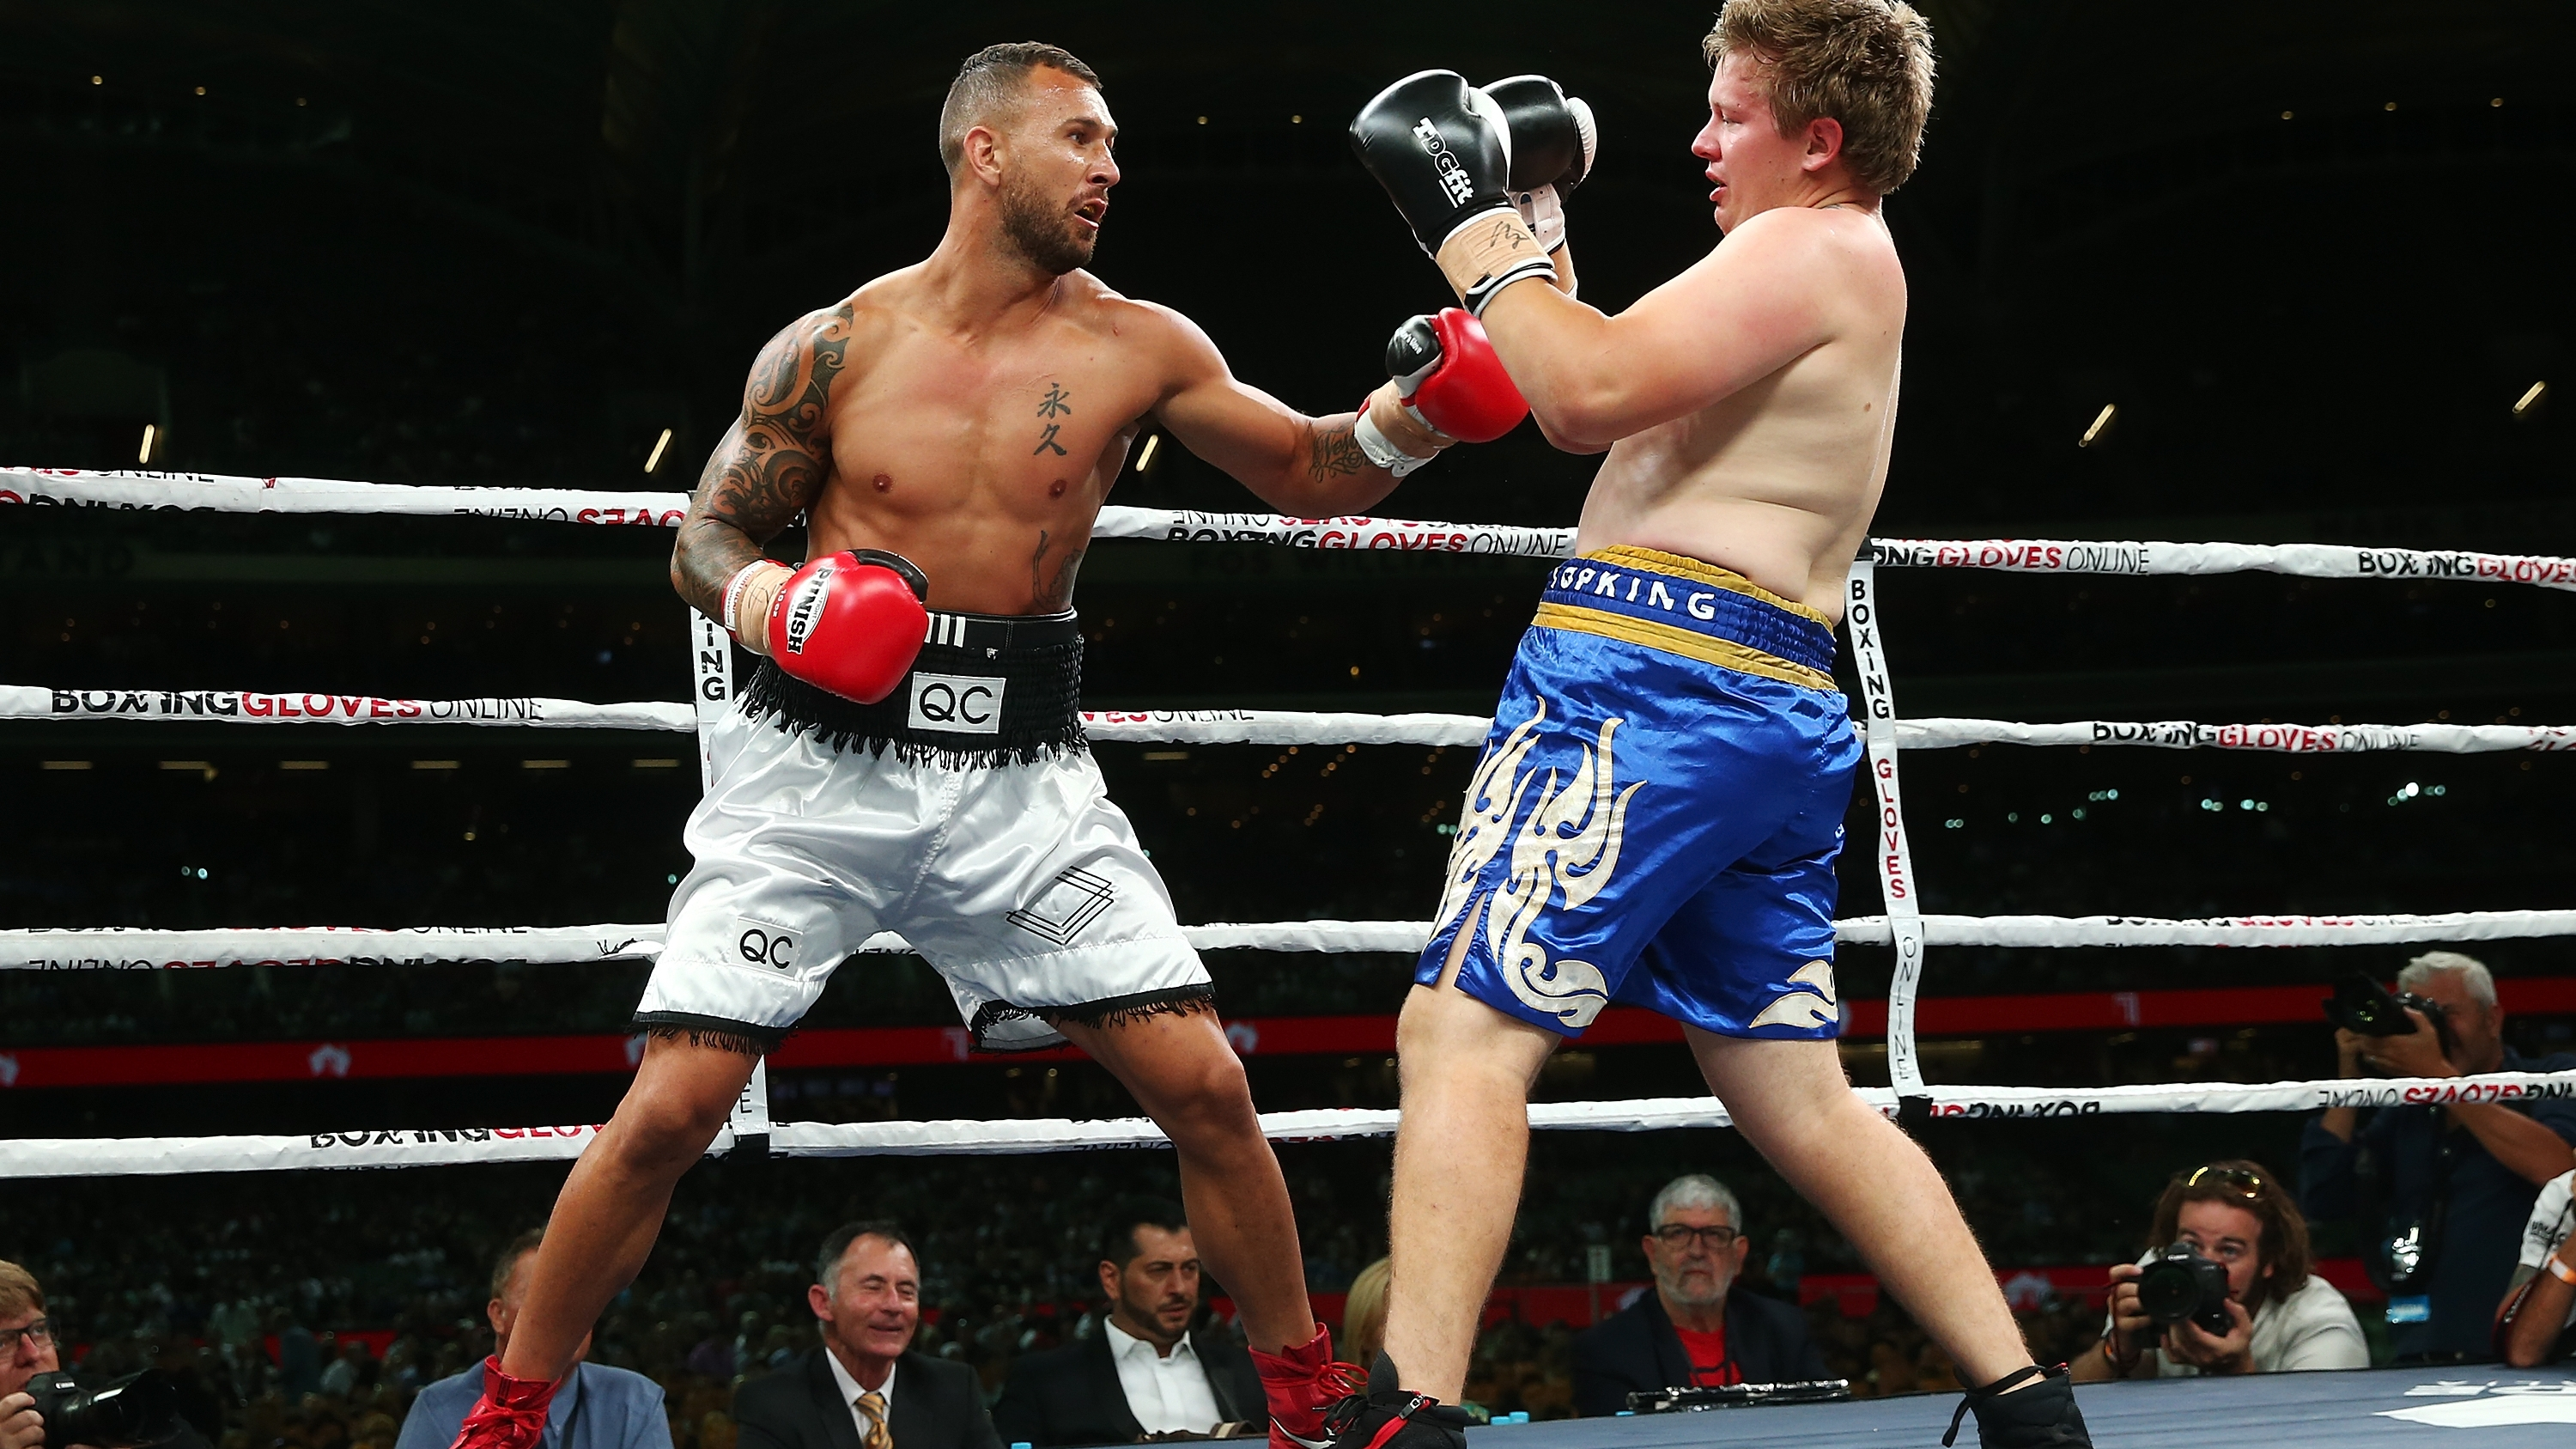 Rugby star Quade Cooper wins third professional fight with ...